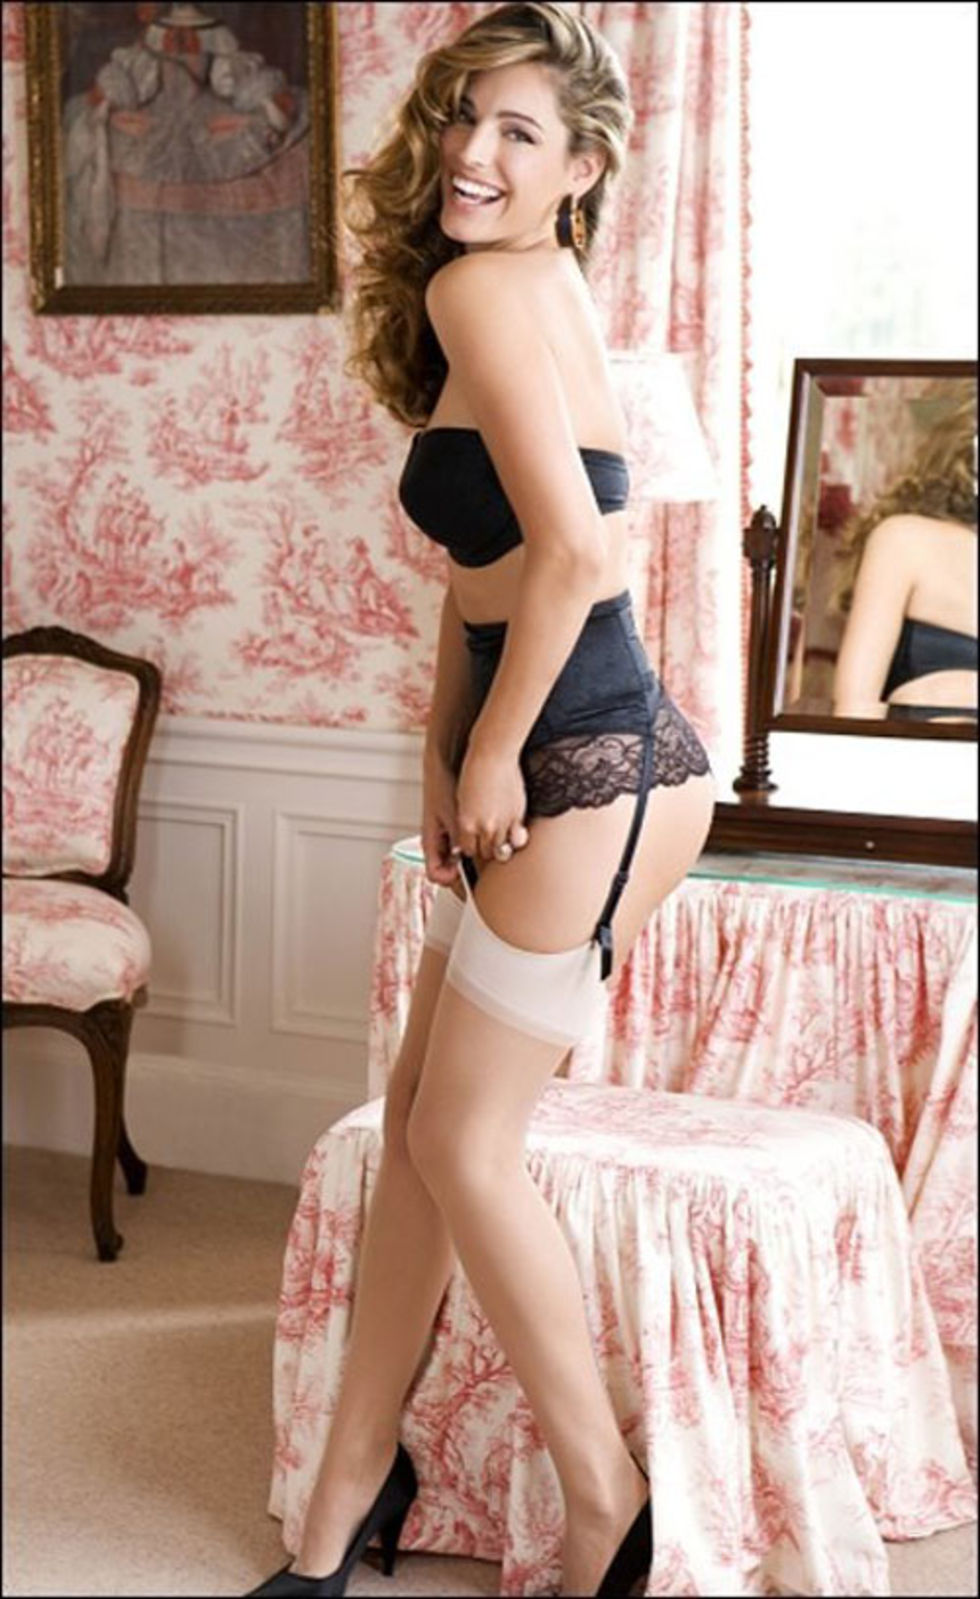 kelly-brook-daily-mirror-magazine-november-2009-mq-01